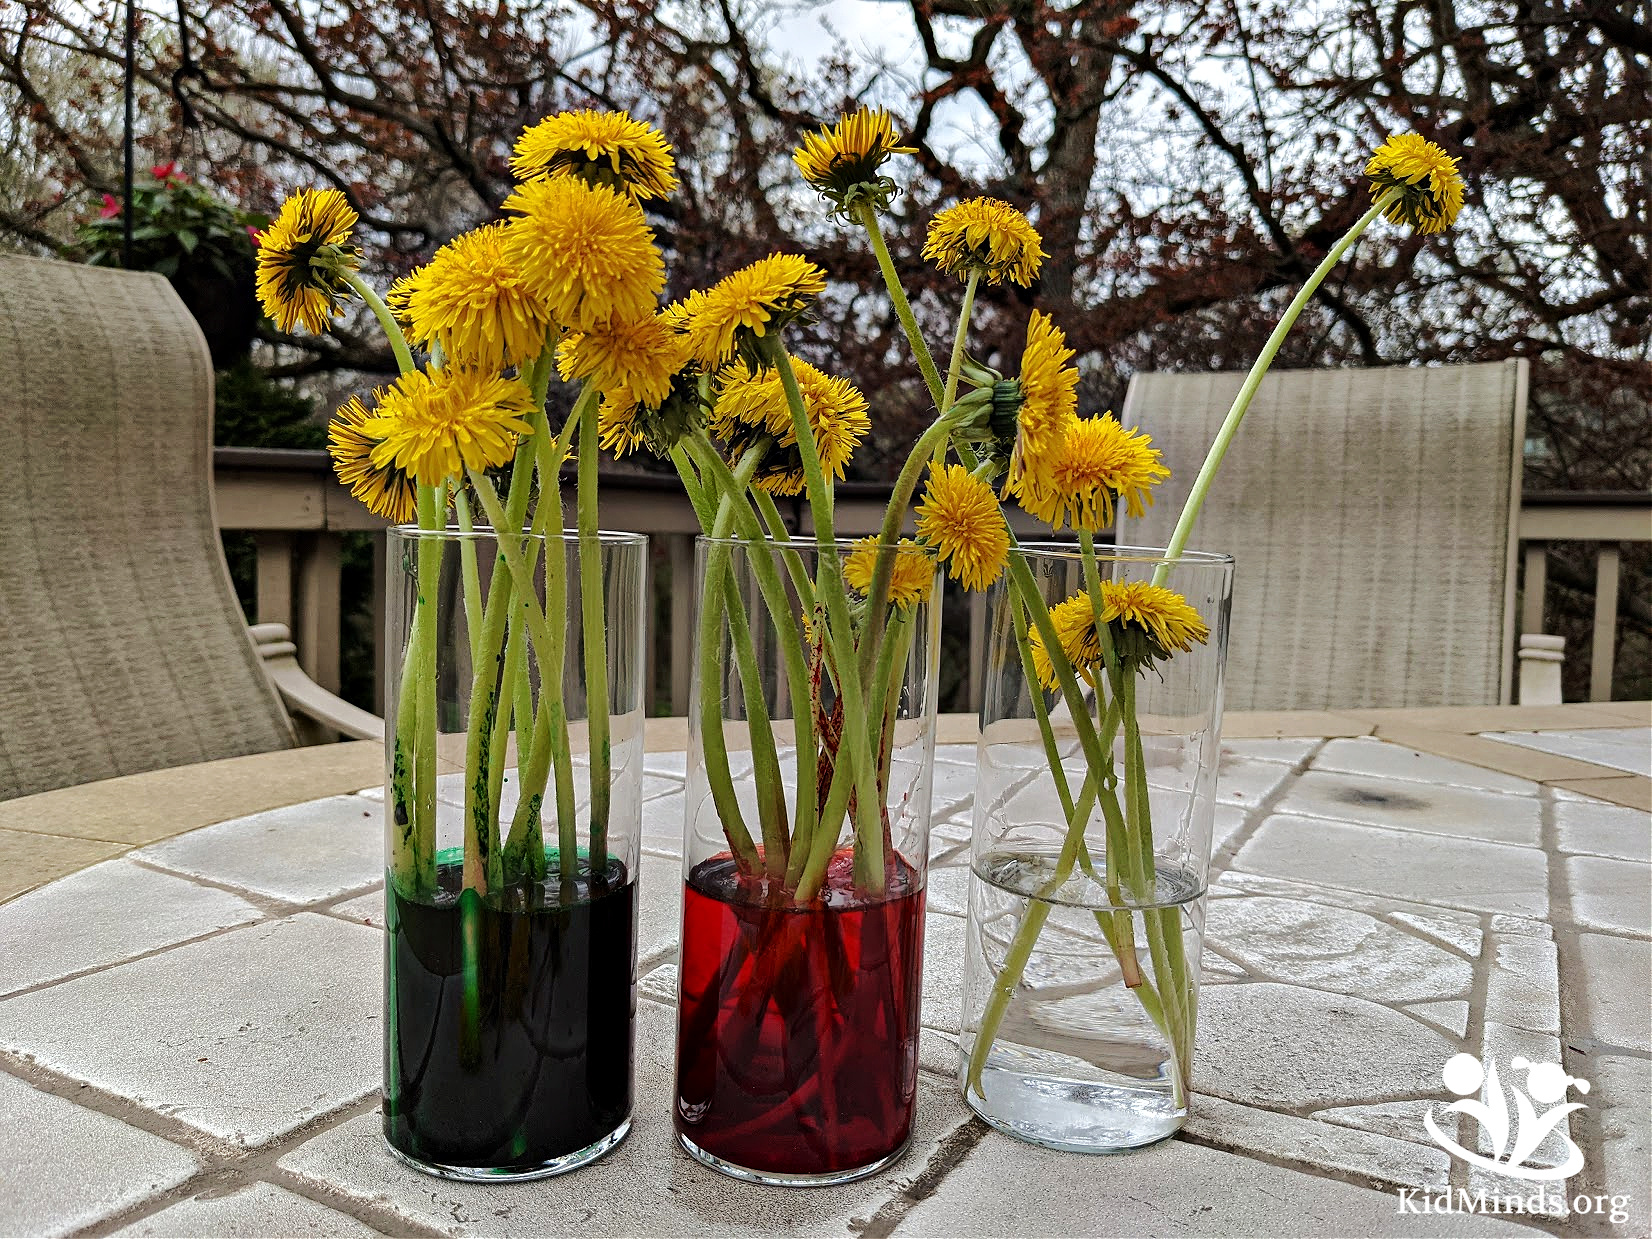 Dandelions have a reputation of being merely pesky weeds, but they are actually quite fascinating, and we can't wait to share those remarkable dandelion experiments and activities with you. #handsonlearning #kidsactivities #spring #dandelions